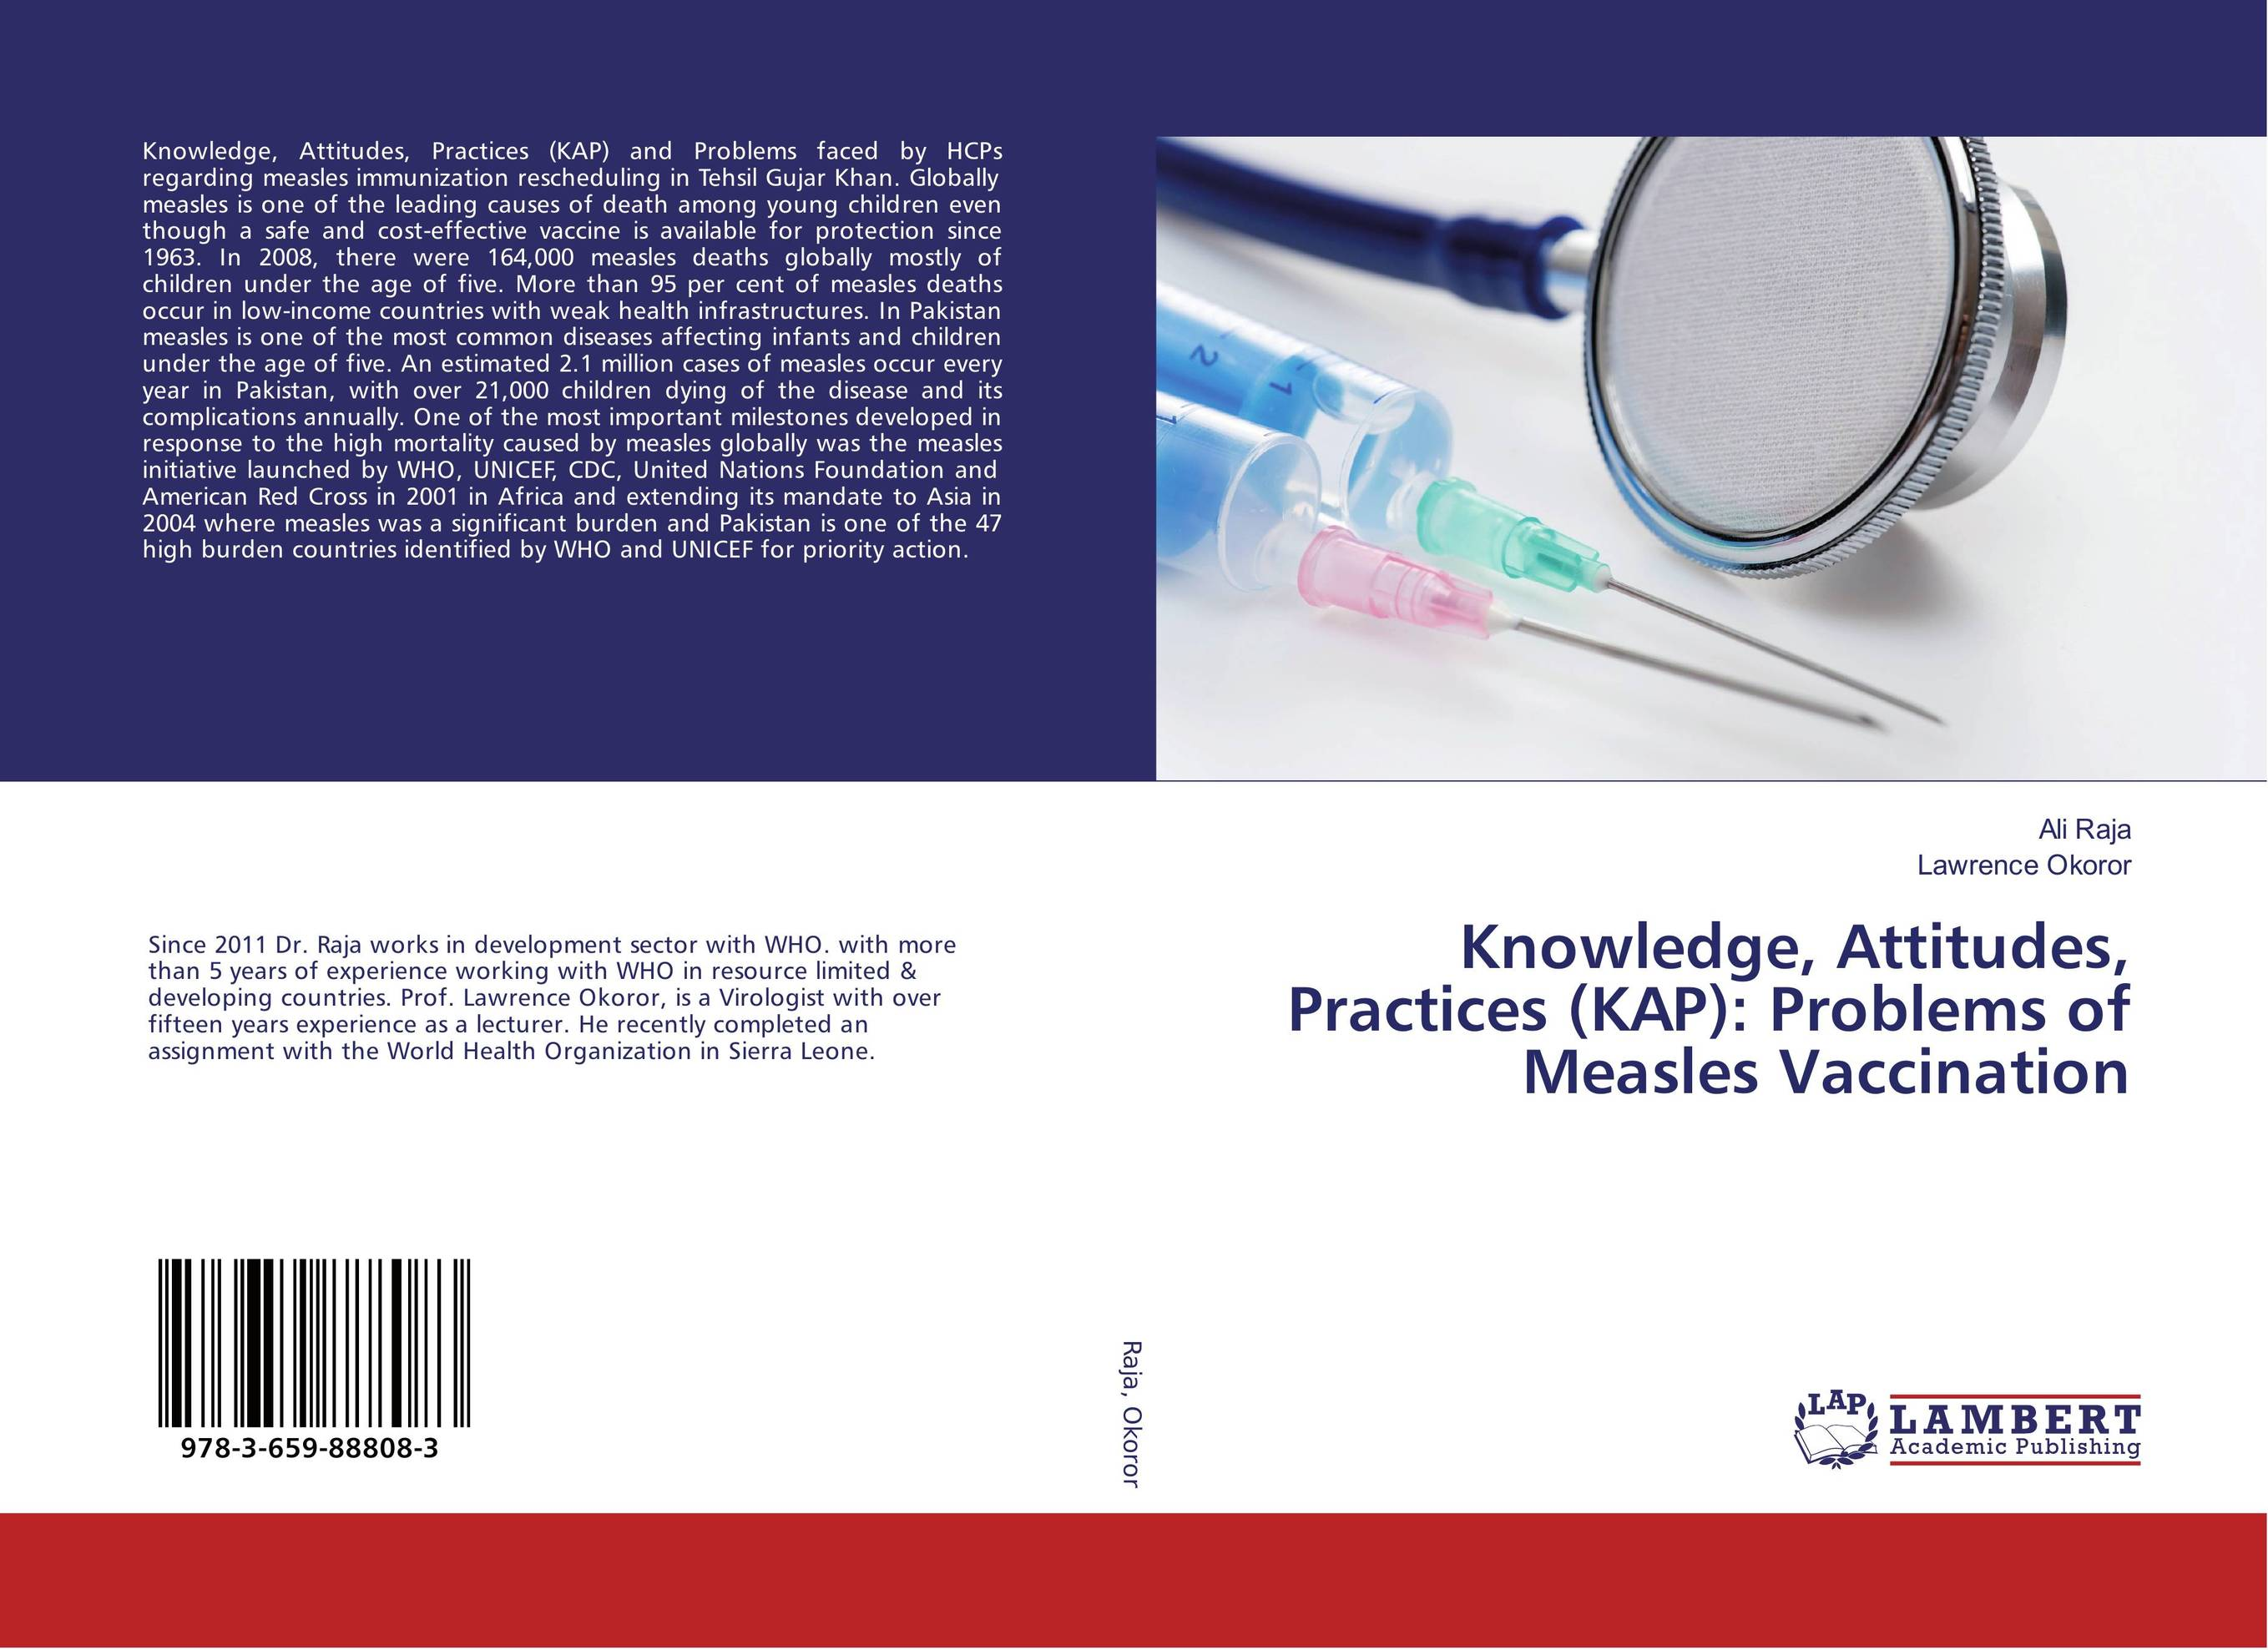 Knowledge, Attitudes, Practices (KAP): Problems of Measles Vaccination measles immunity status of children in kano nigeria